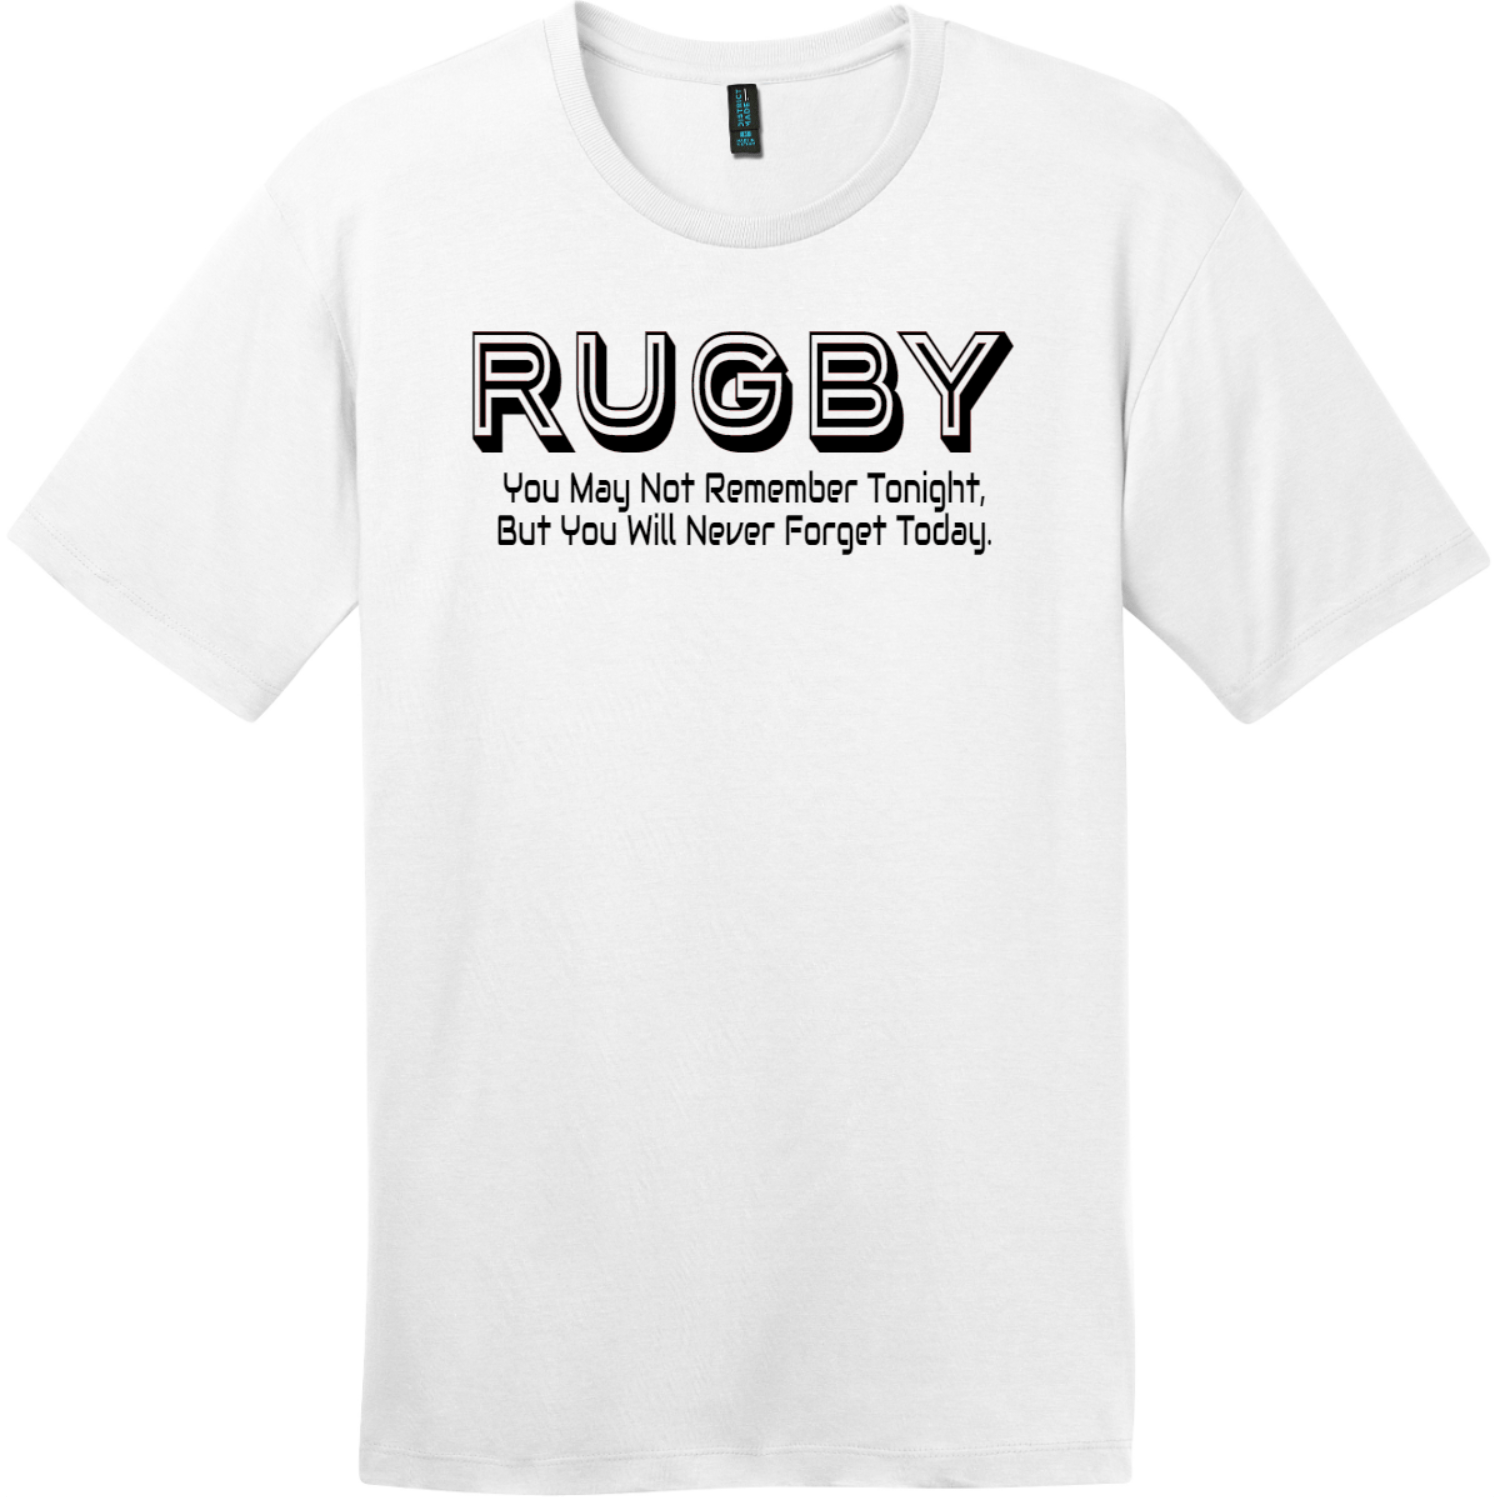 Rugby You May Not Remember Tonight T-Shirt Bright White District Perfect Weight Tee DT104